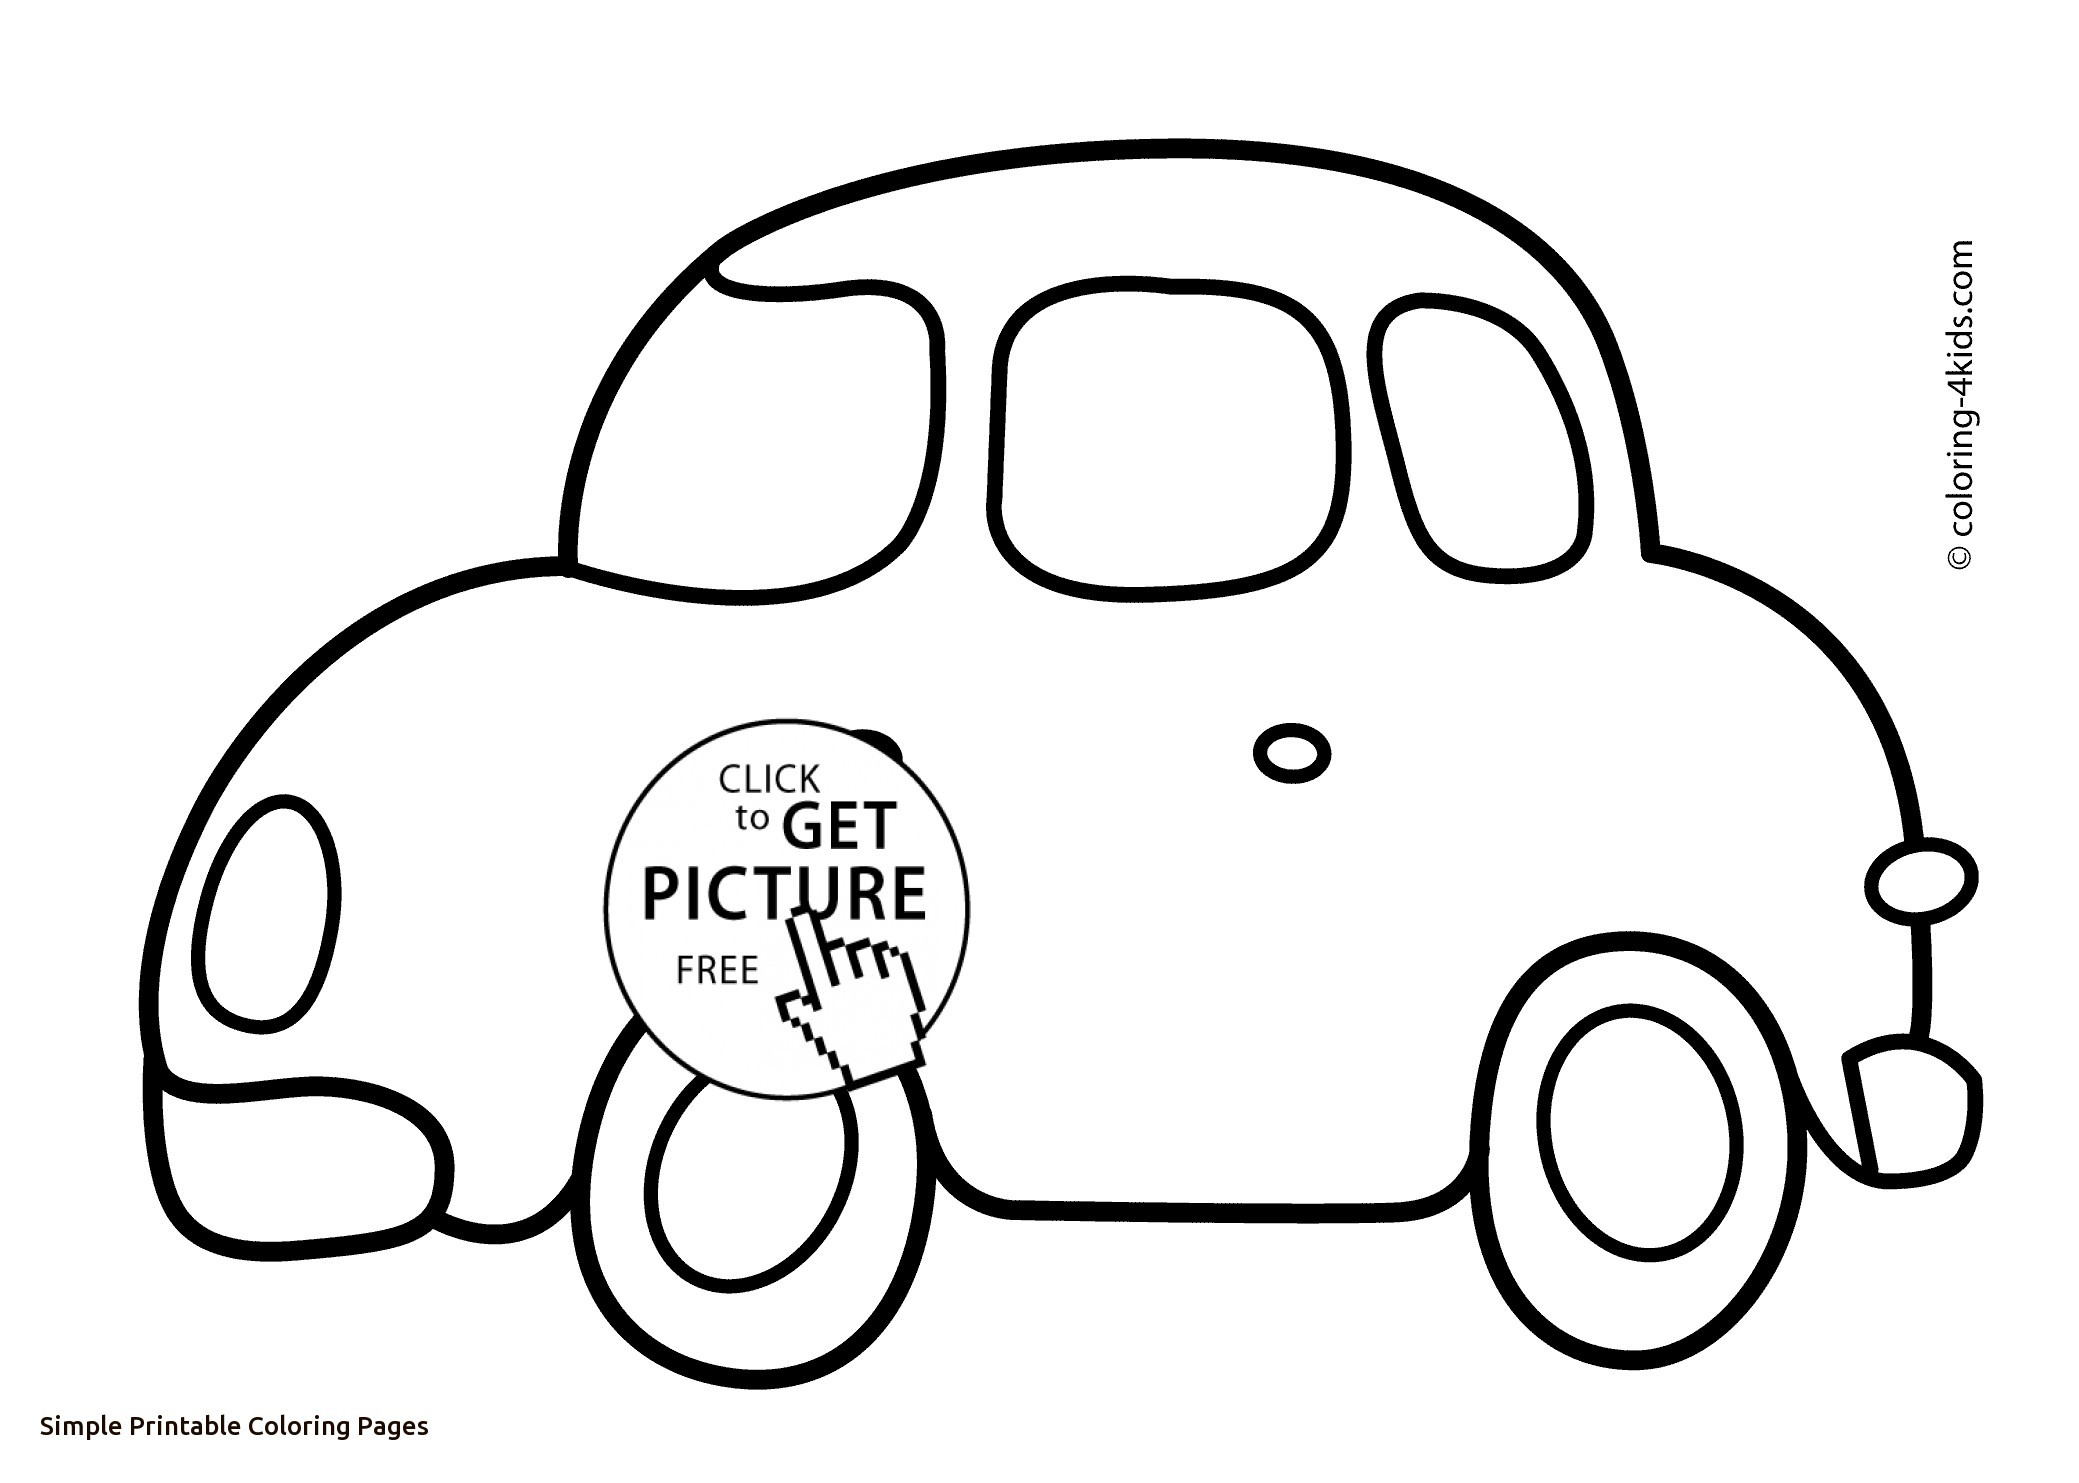 Simple Coloring Pages For Kids At Getdrawings Com Free For